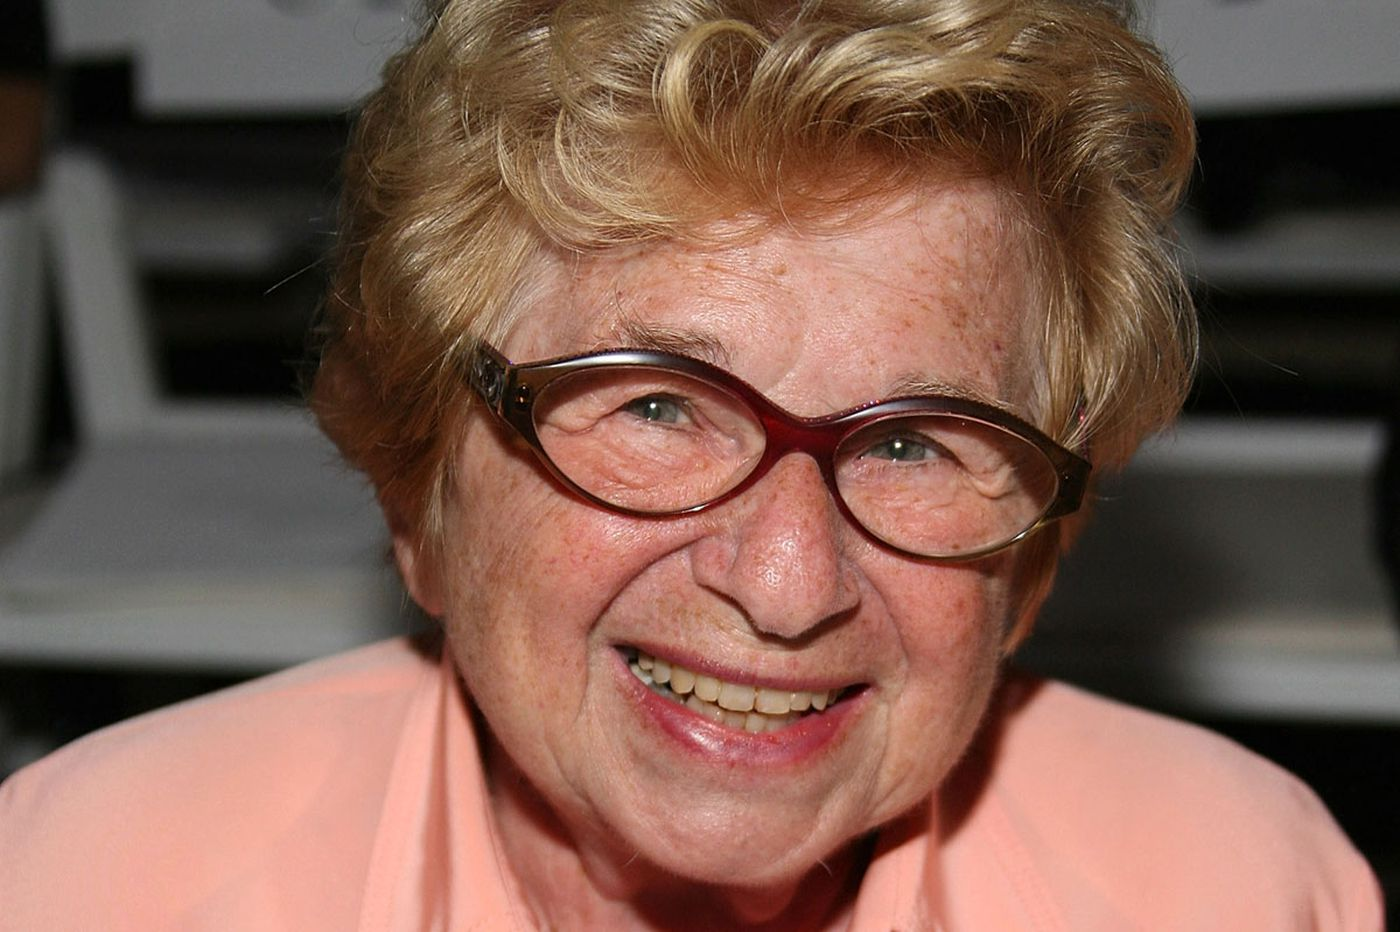 What would you ask Dr. Ruth if you had a chance?